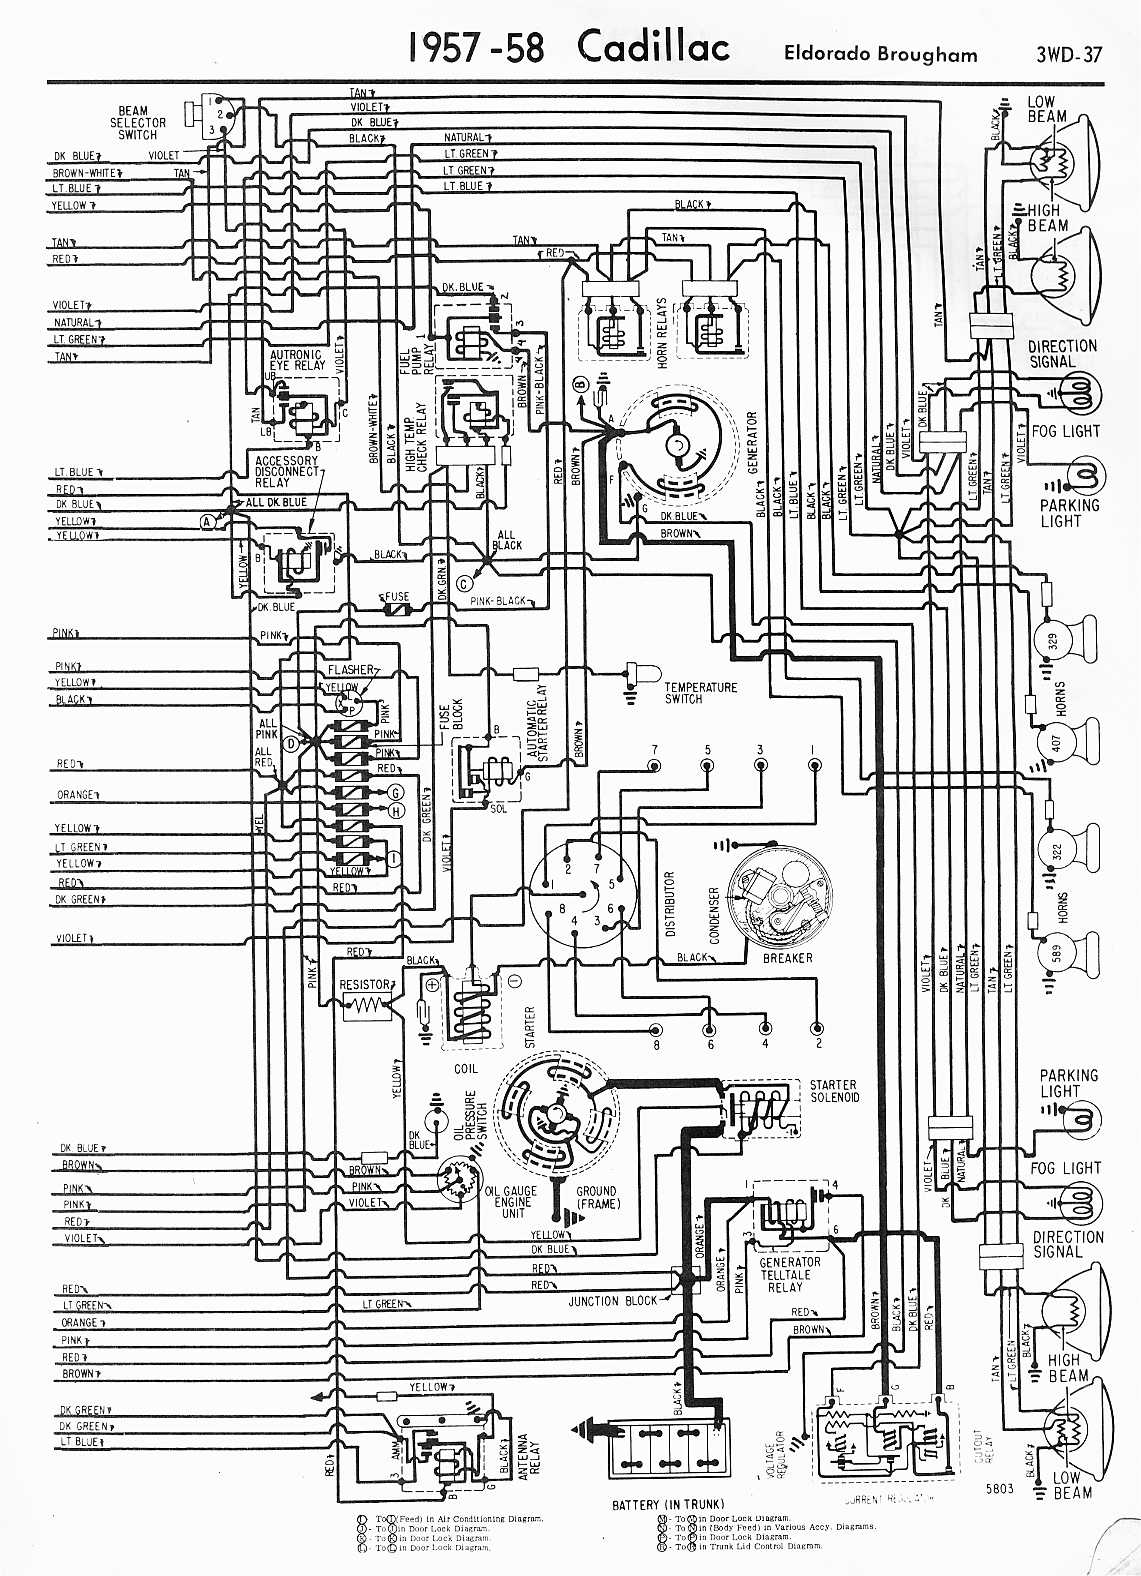 1962 Cadillac Wiring Diagram Schematics Fiat Vacuum Diagrams 1957 1965 1992 Brougham 58 Eldorado Right